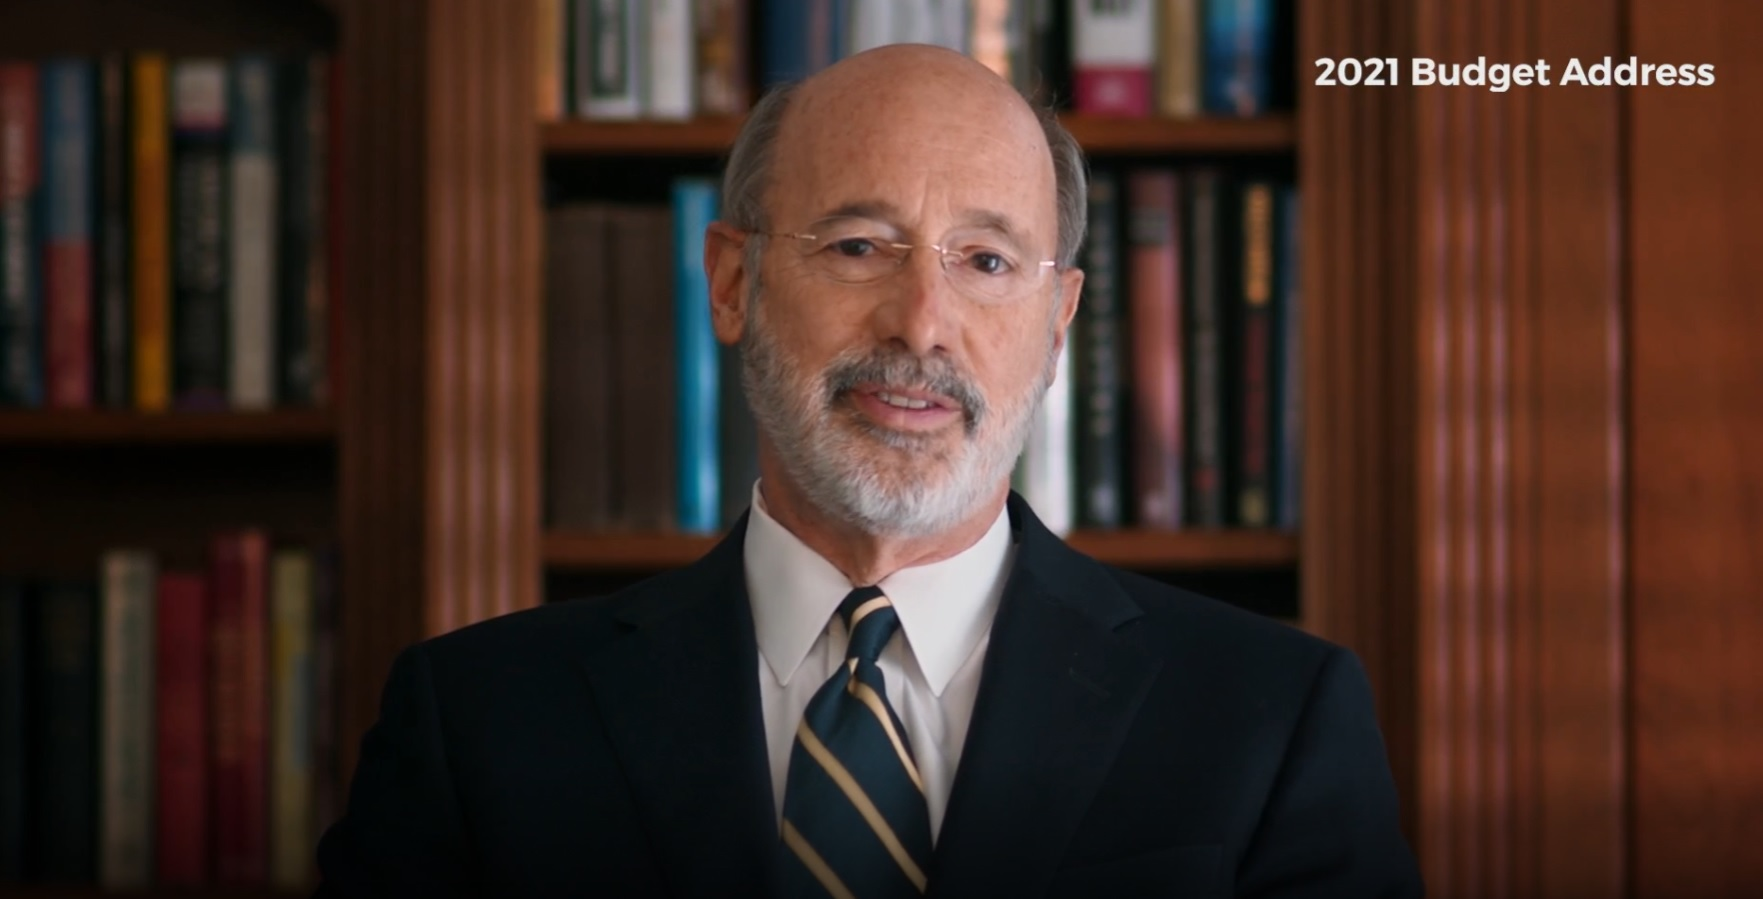 Gov. Tom Wolf delivers his 2021 budget address online on Wednesday, Feb. 3, 2021. (Source: PA.gov)